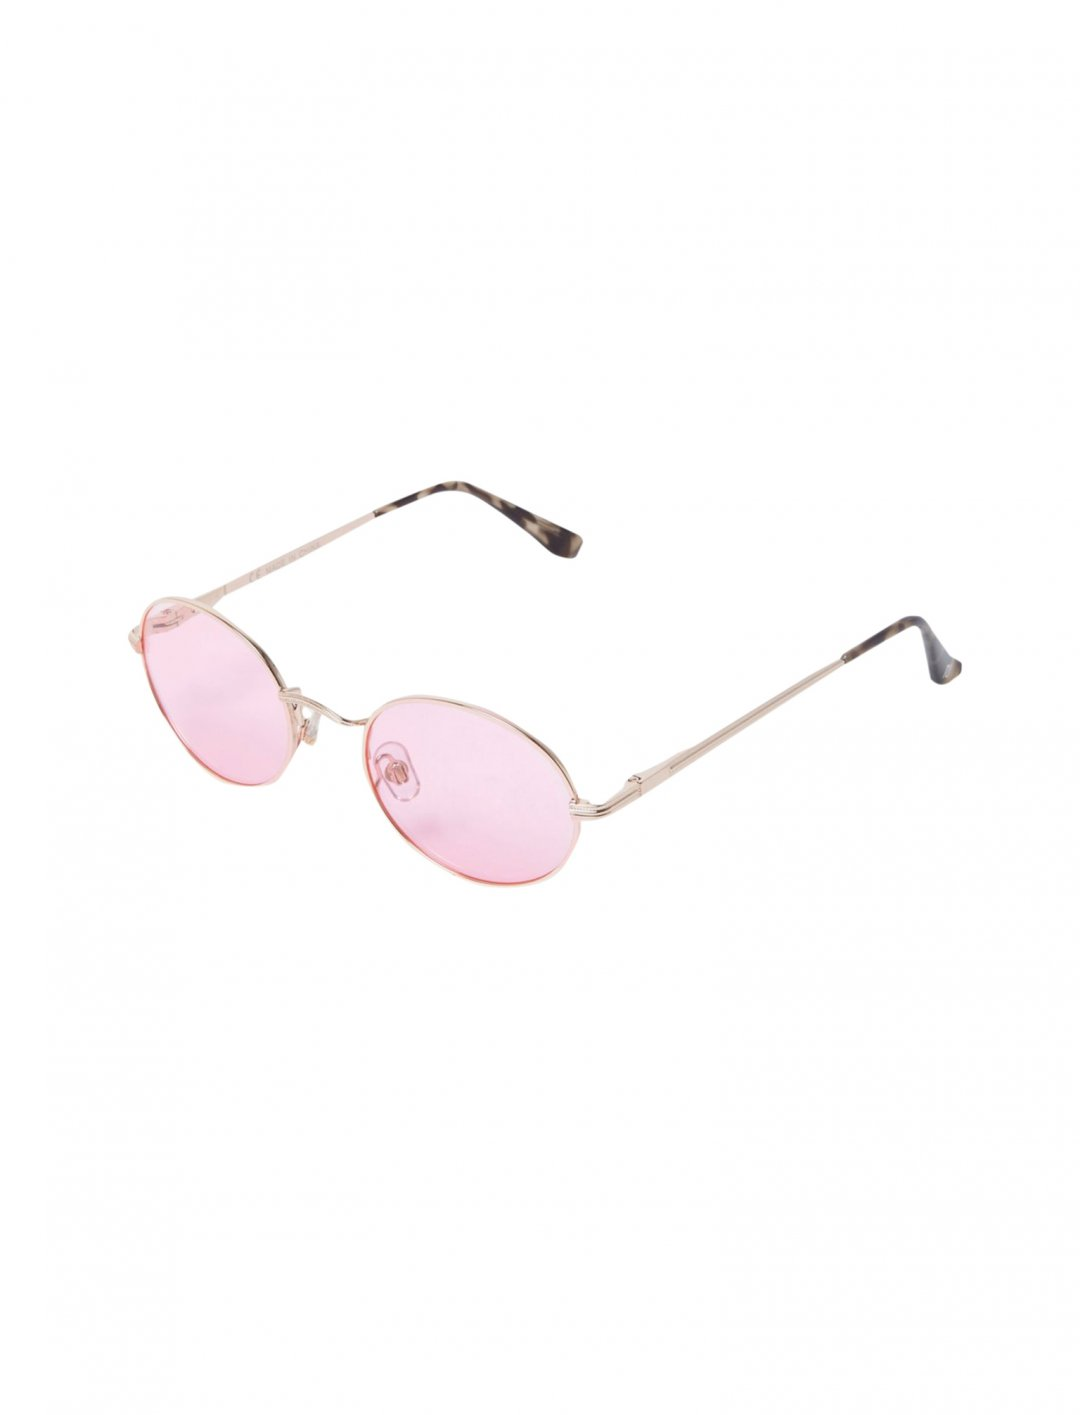 "River Island Pink Sunglasses {""id"":16,""product_section_id"":1,""name"":""Accessories"",""order"":15} River Island"